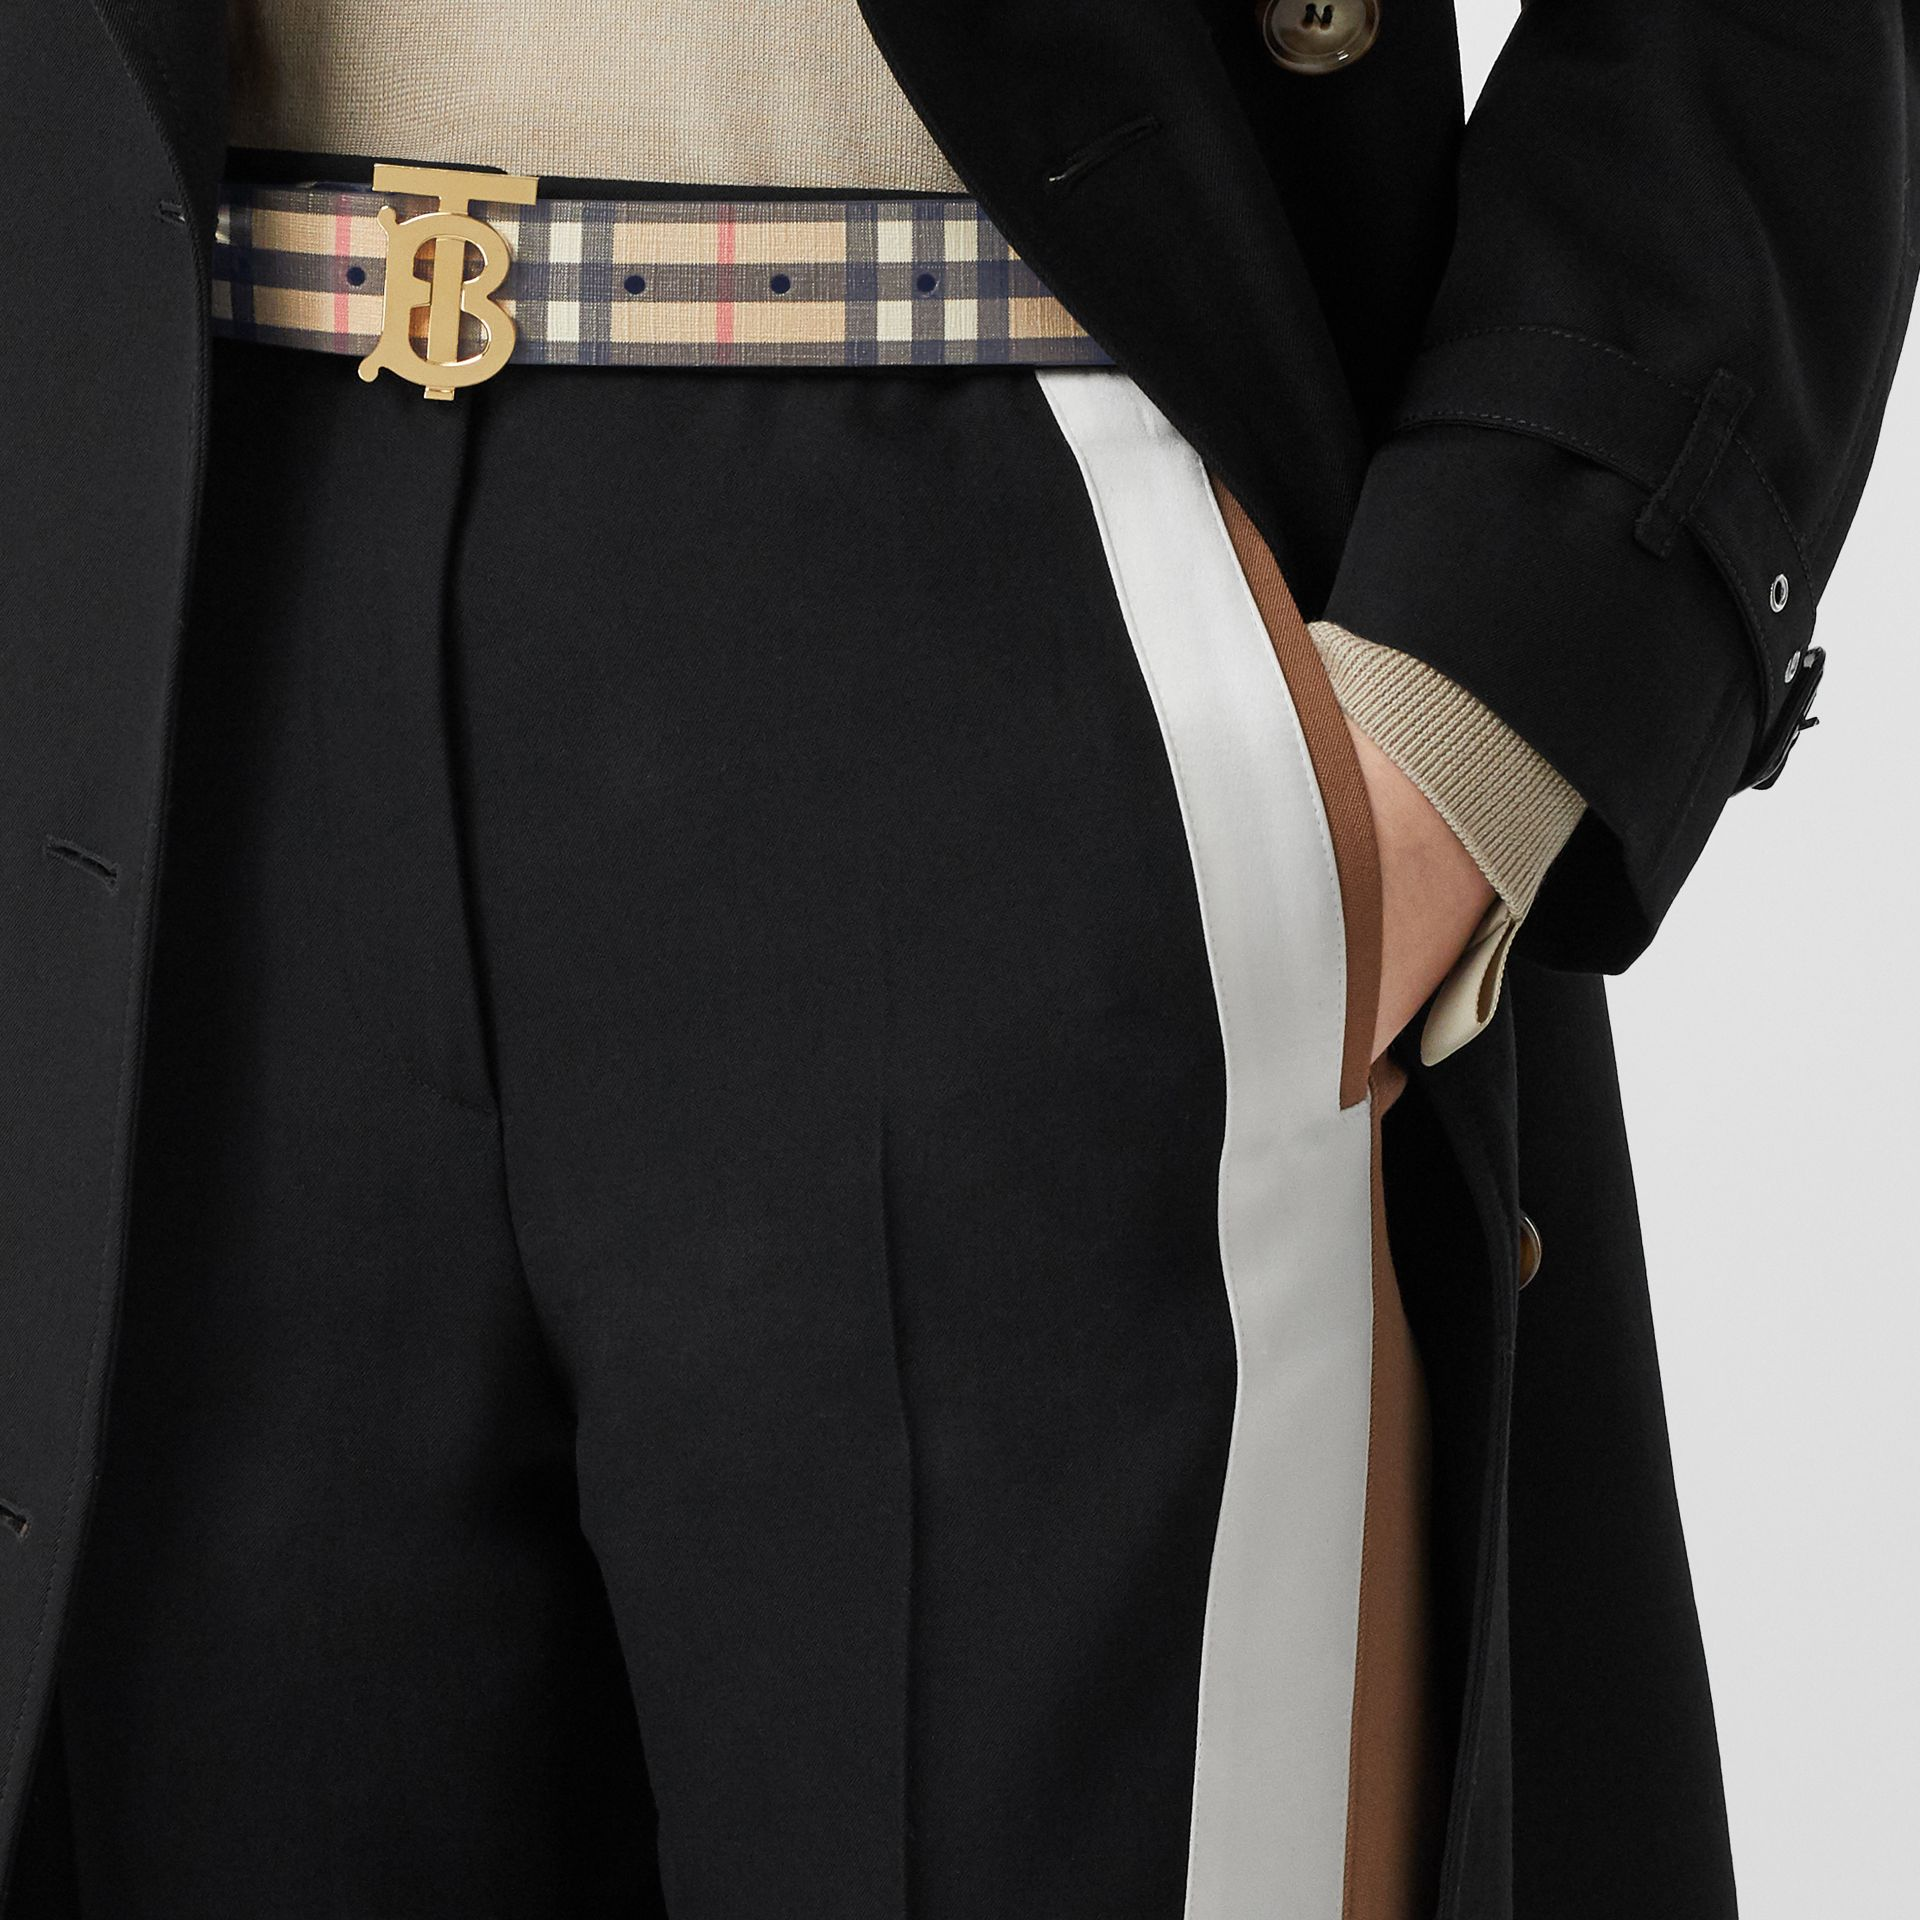 Monogram Motif Vintage Check E-canvas Belt in Archive Beige - Women | Burberry Canada - gallery image 2